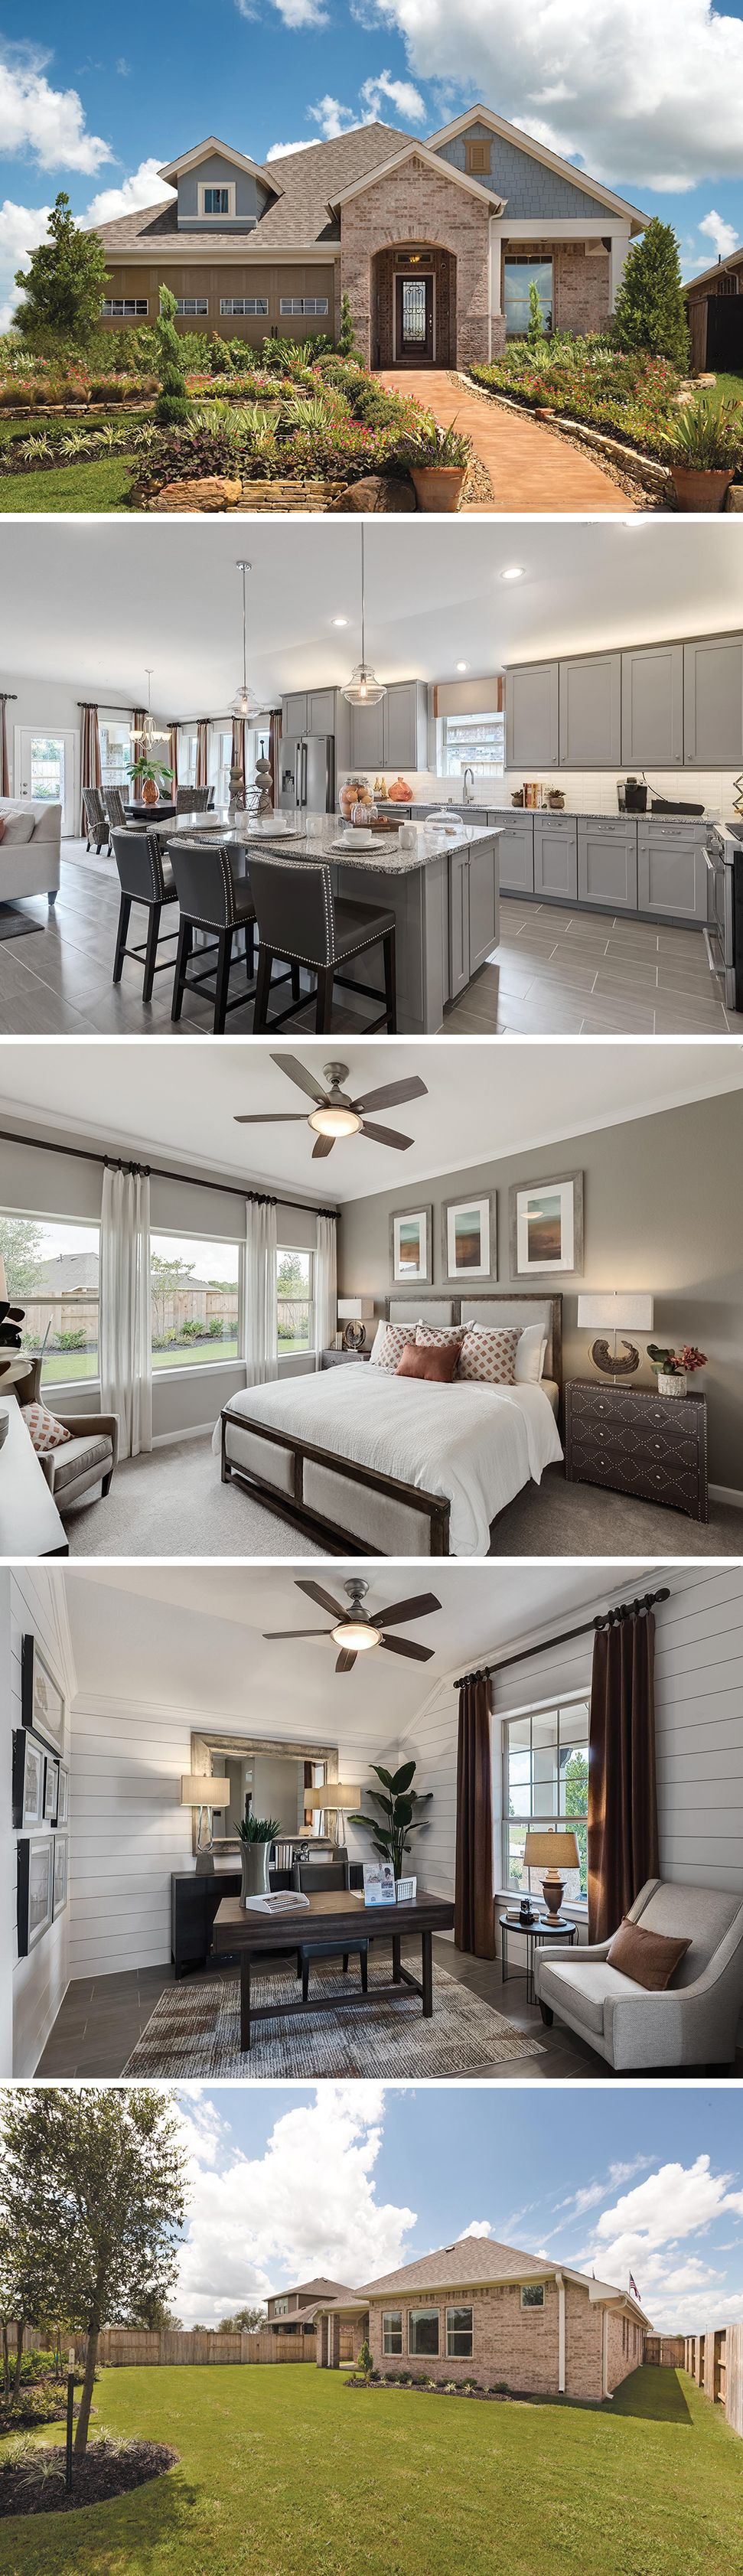 Meridiana is located just south of the texas medical - Windsor village swimming pool houston tx ...